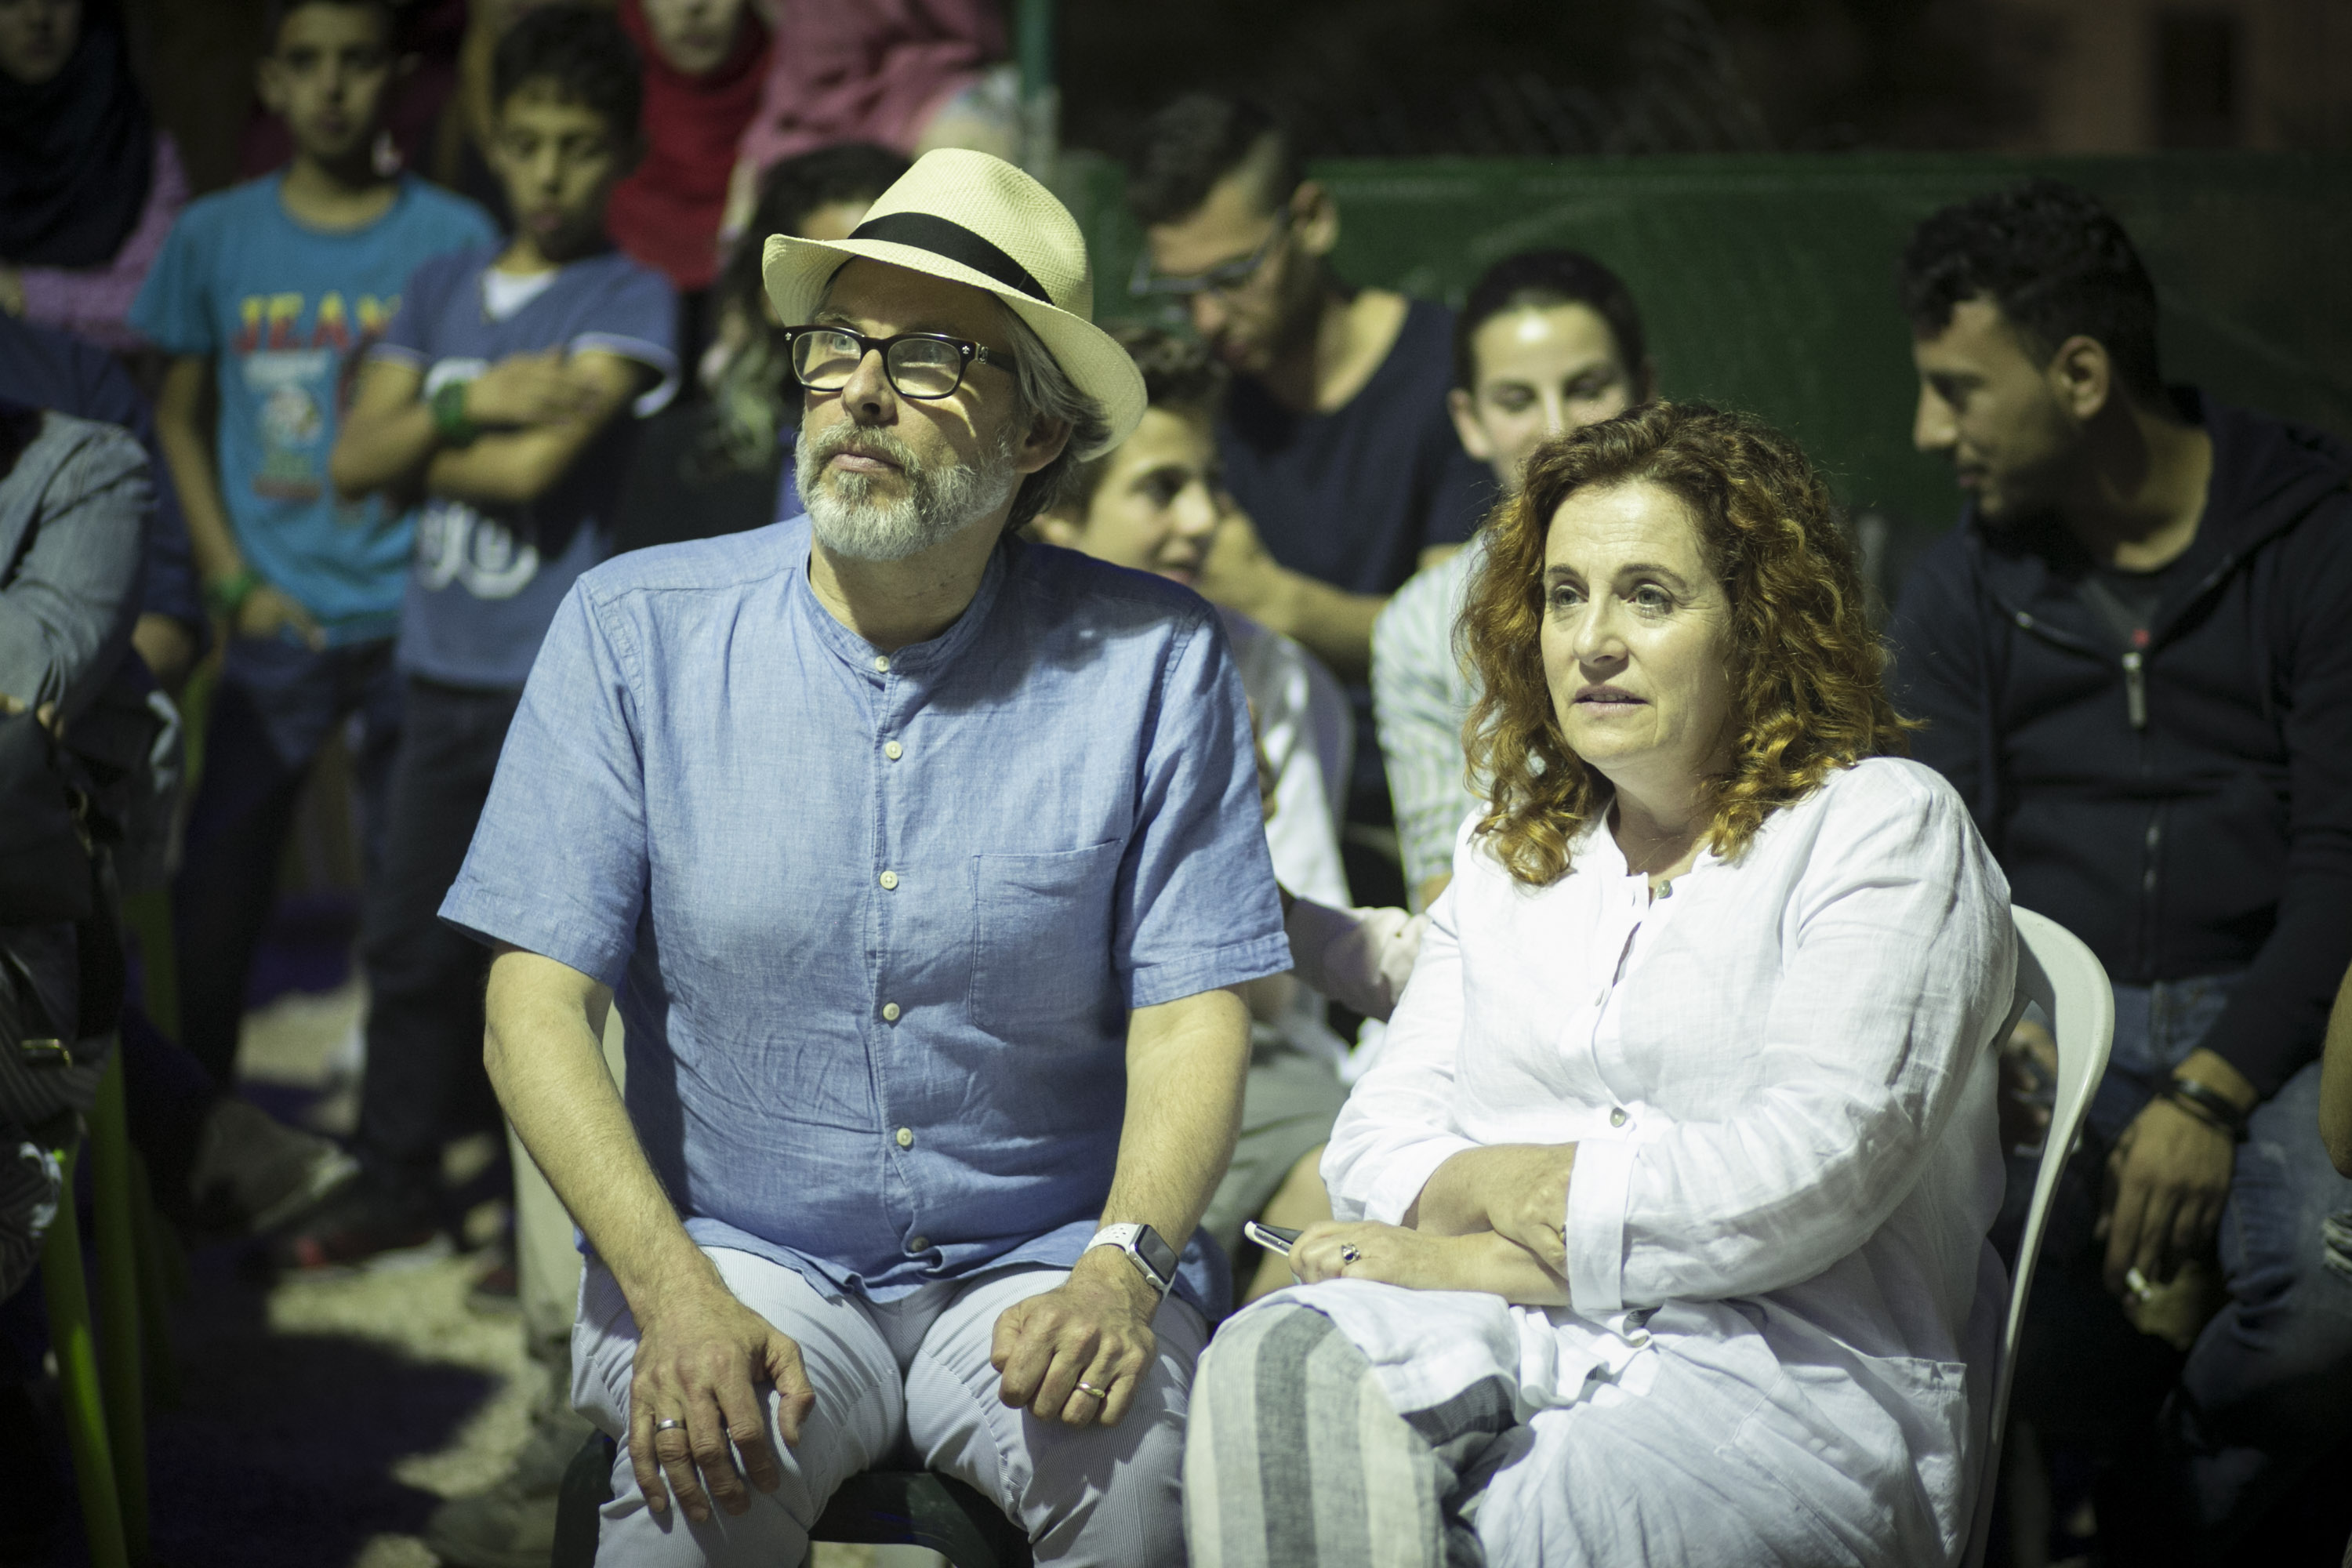 Chabon and Waldman at a book launch event in Hebron, West Bank. (Breaking the Silence)